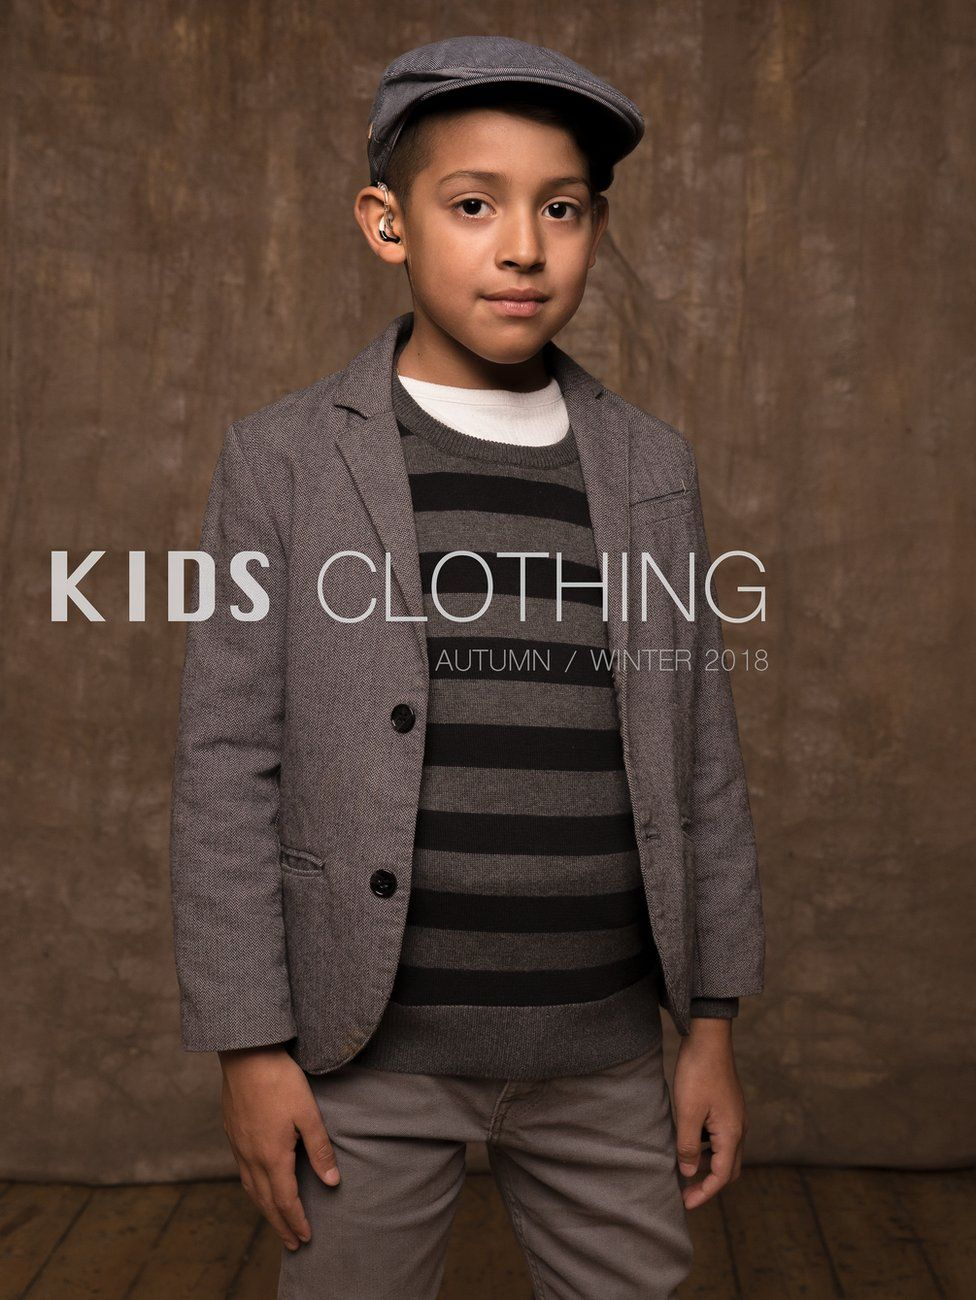 Santiago Ospina Lozada in a fashion shoot with hearing aid